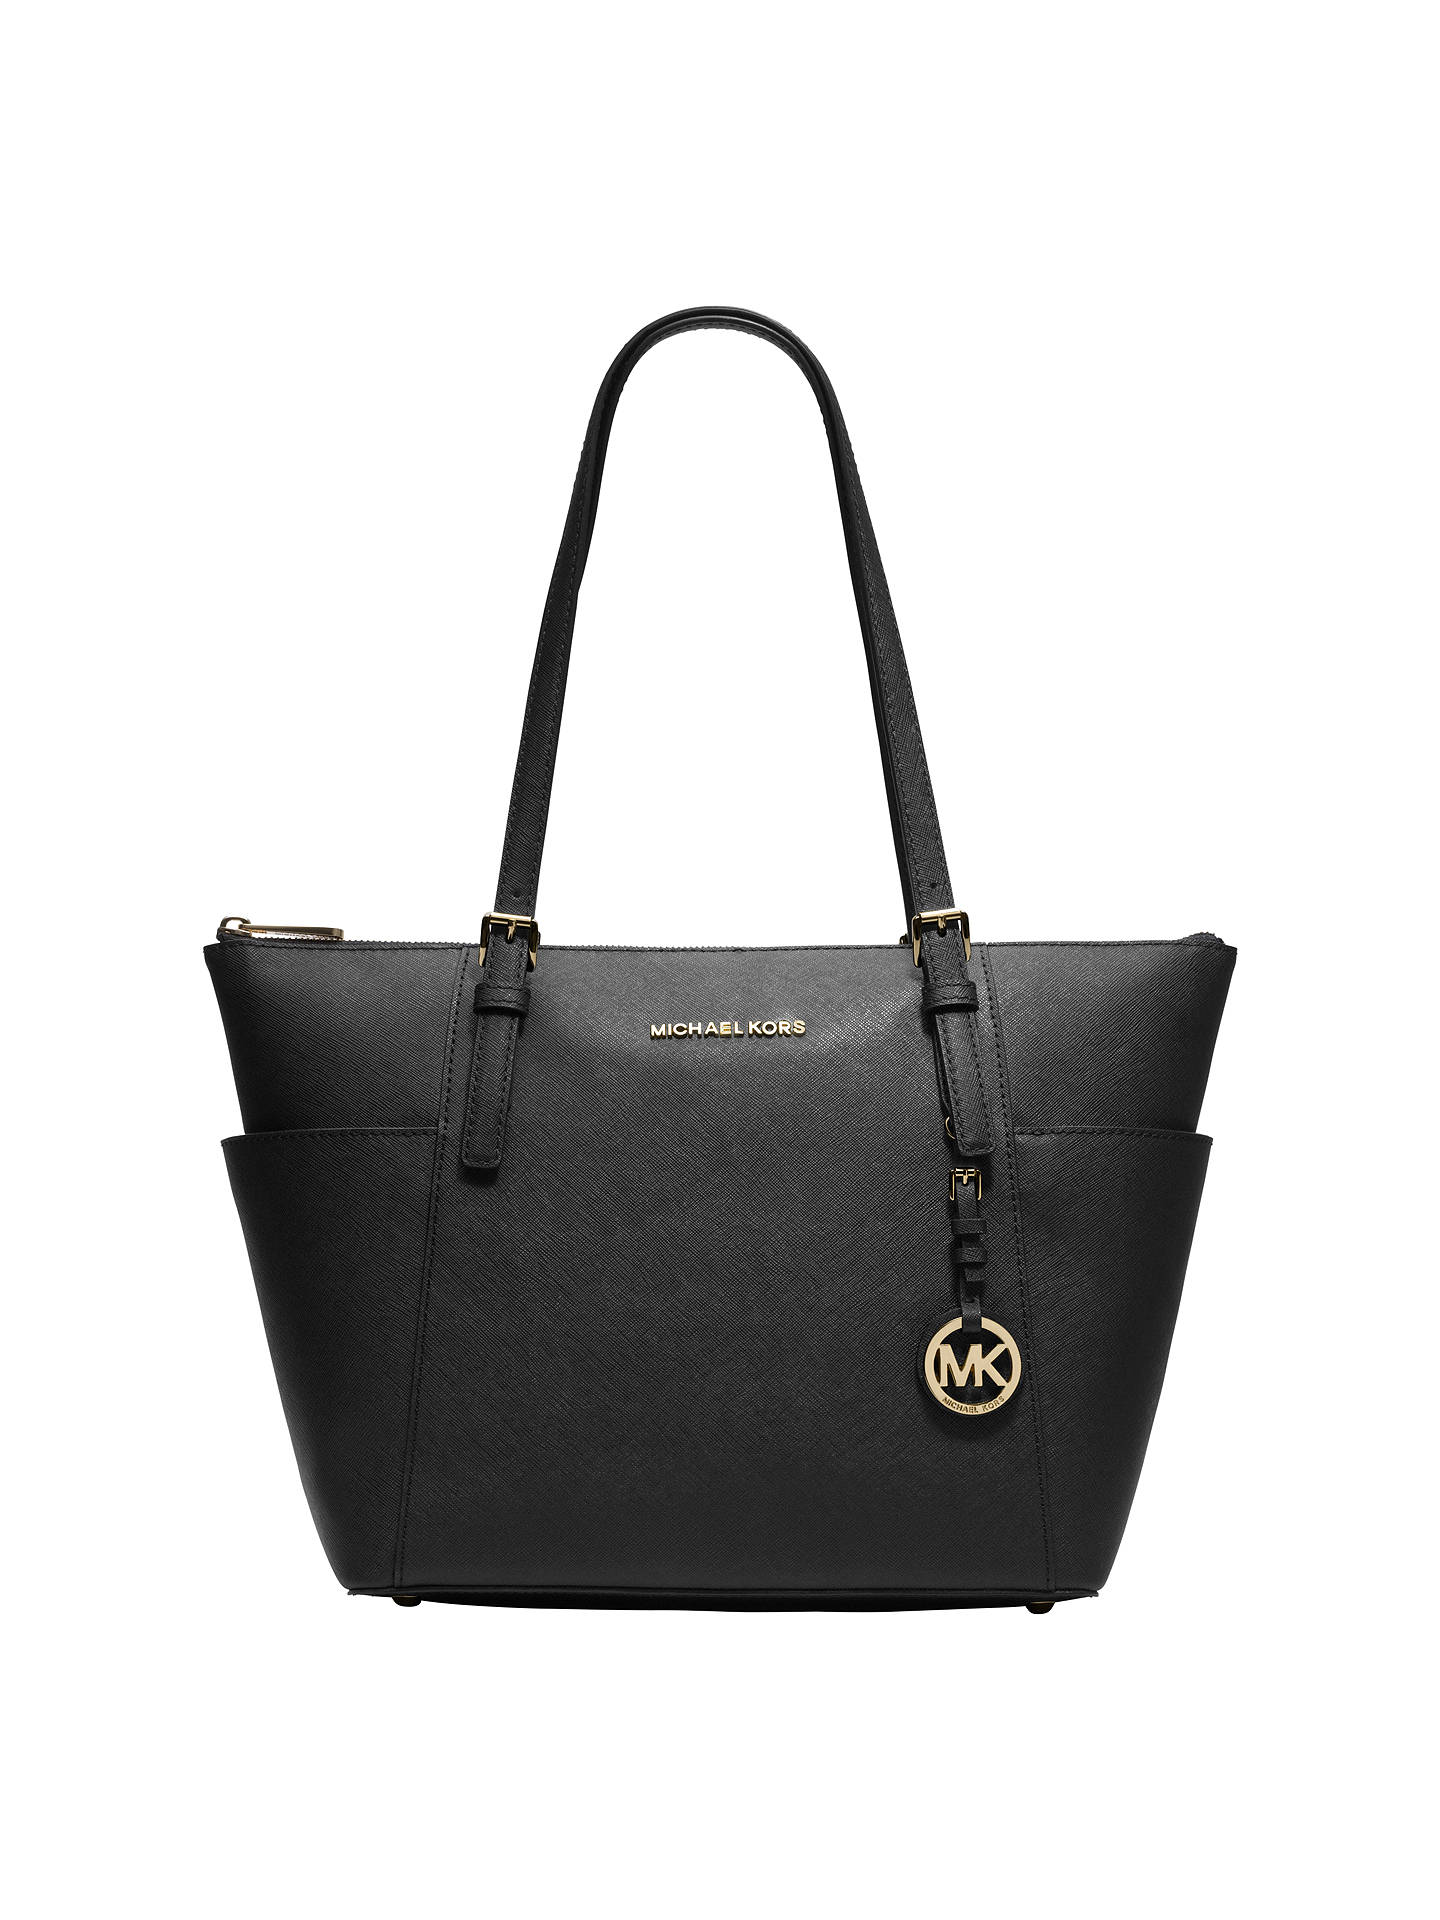 9af7f9b27f0f Buy MICHAEL Michael Kors Jet Set East/West Leather Tote Bag, Black Online  at ...